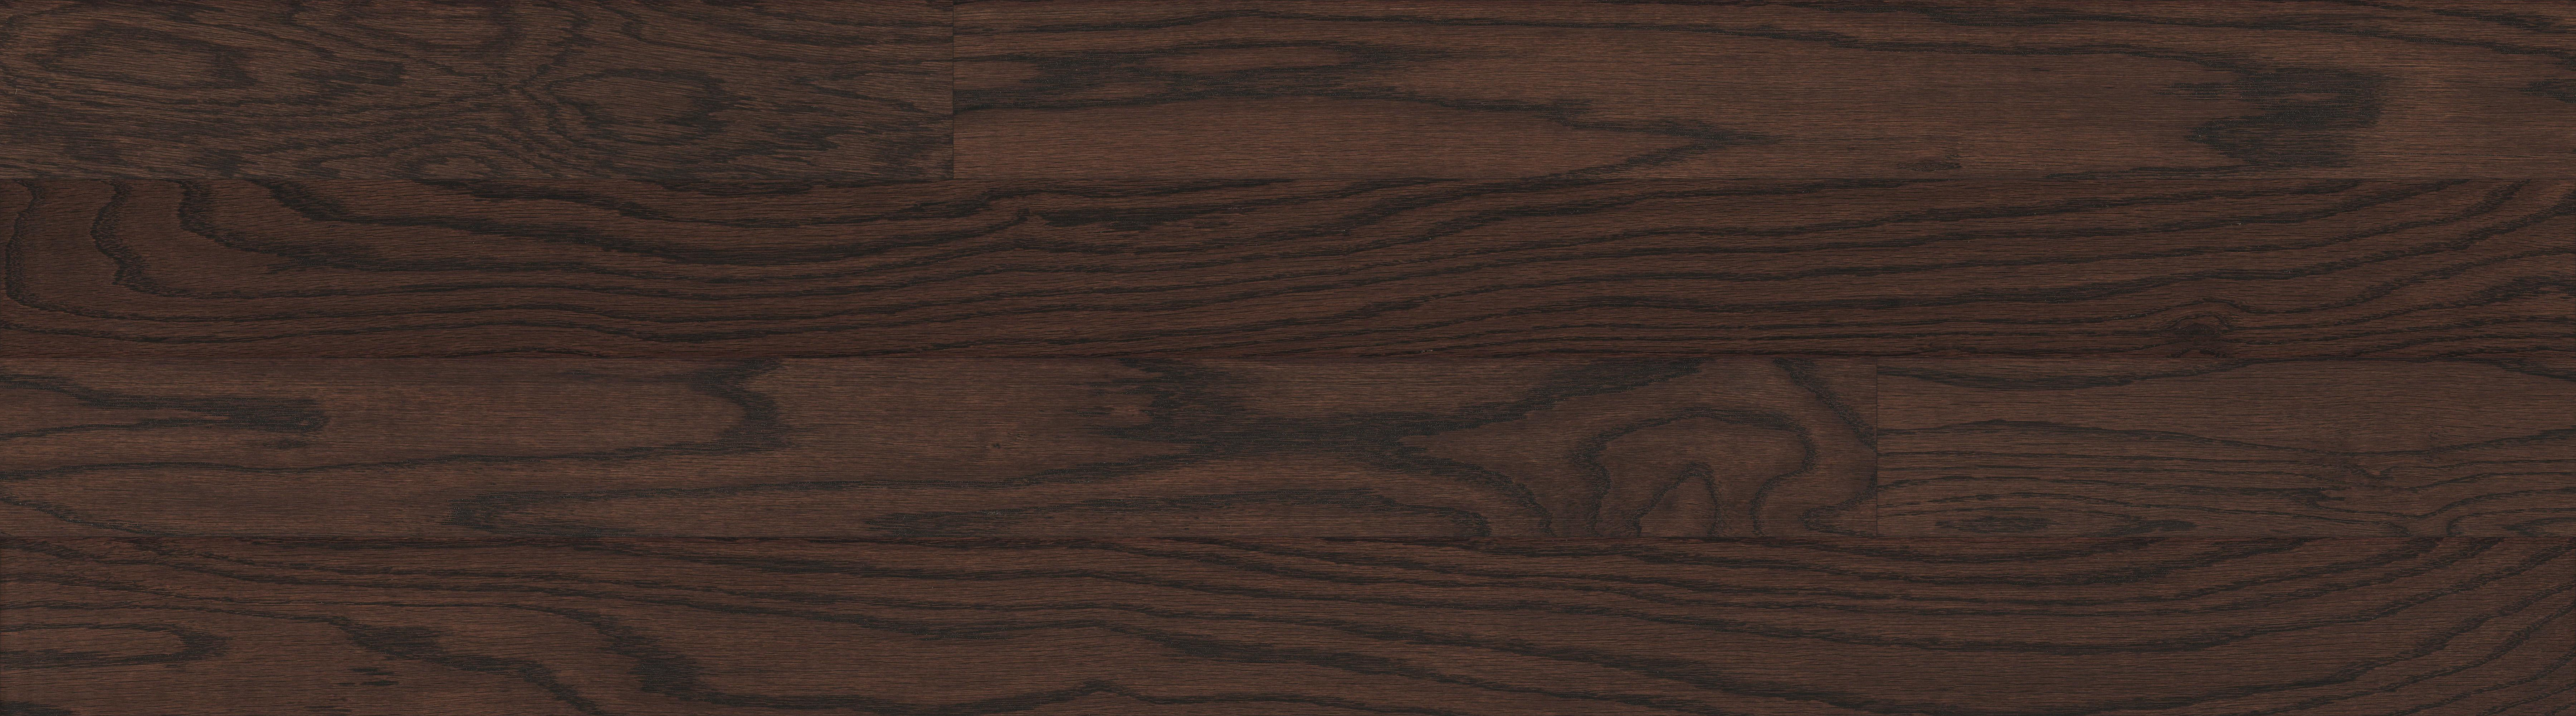 1 1 2 inch wide hardwood flooring of mullican ridgecrest oak burnt umber 1 2 thick 5 wide engineered with regard to mullican ridgecrest oak burnt umber 1 2 thick 5 wide engineered hardwood flooring